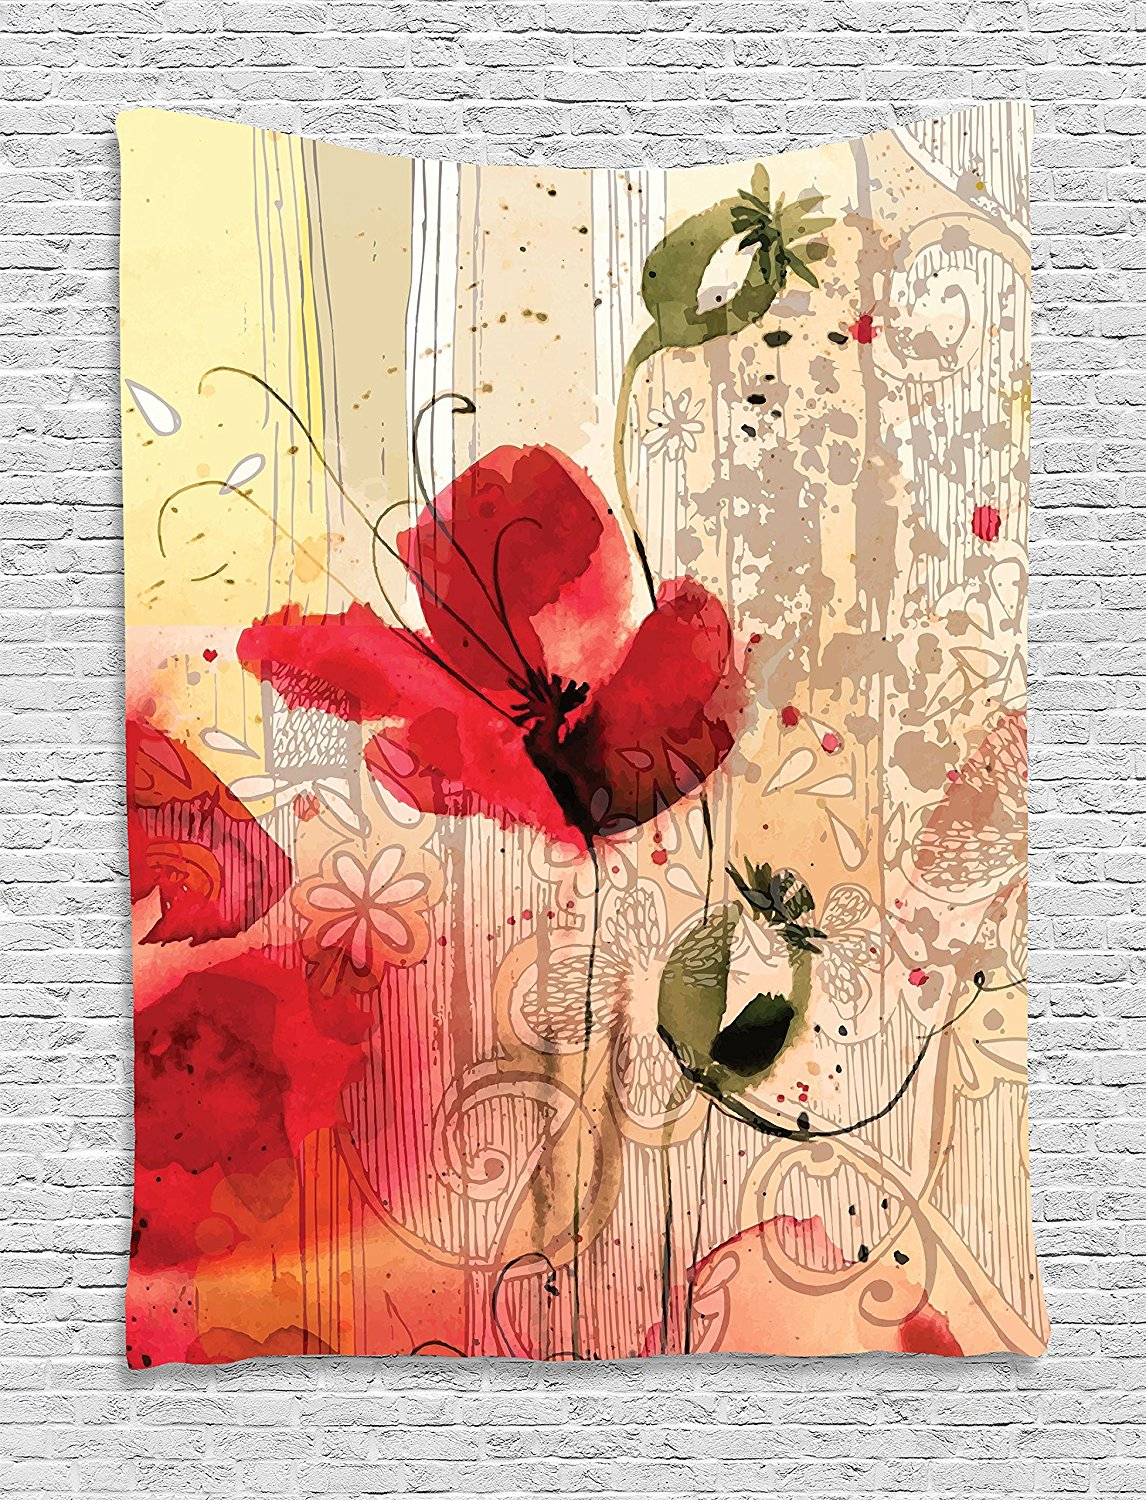 Flower Tapestry Decor, Red Poppy Flower Beige Floral Watercolor Design Digital Art Print Spring Plants, Wall Hanging For Bedroom Living. (View 8 of 20)